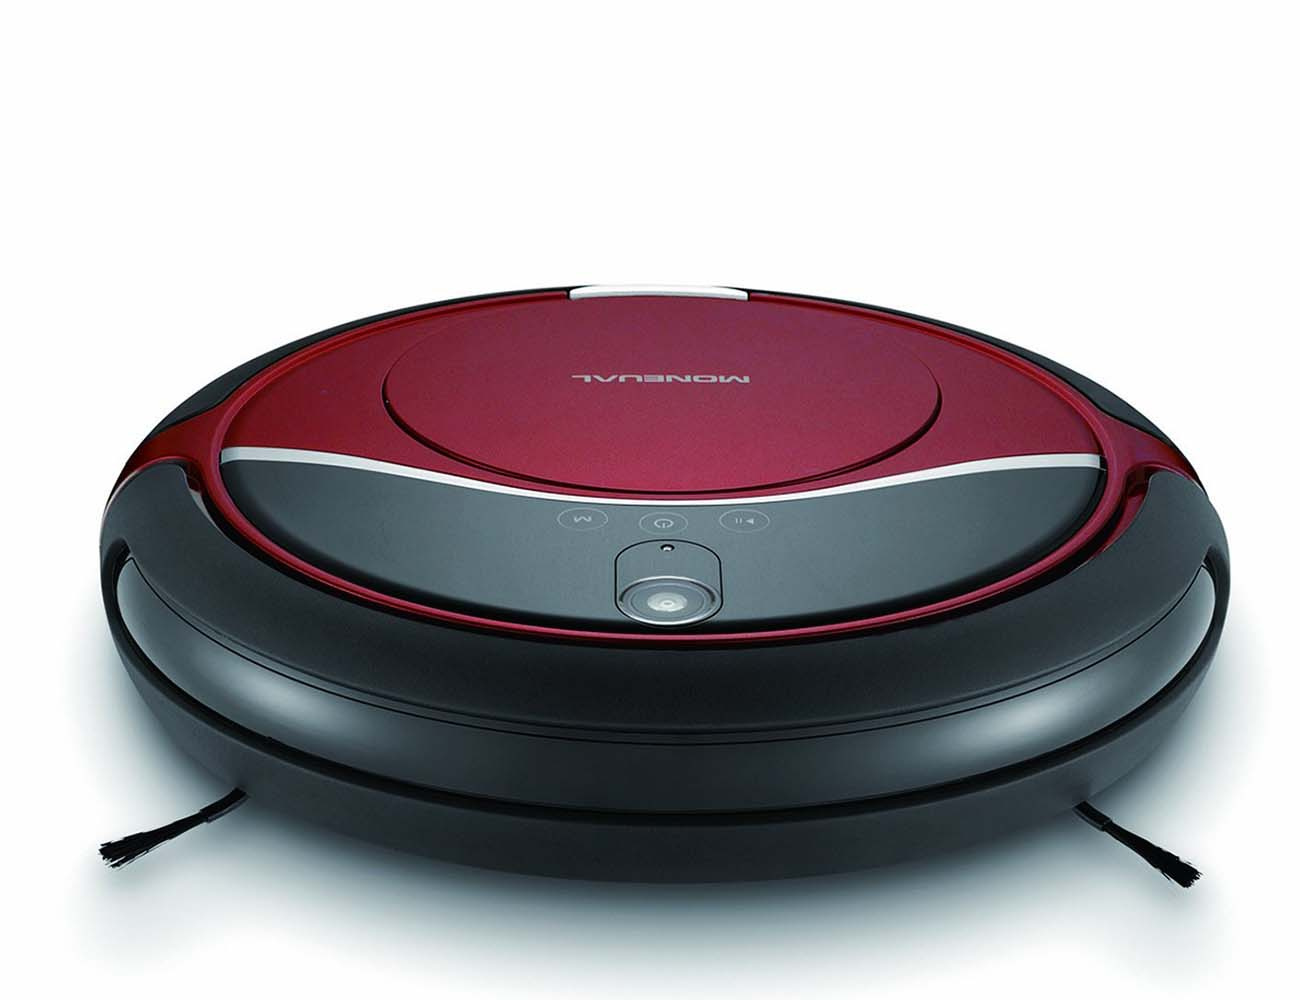 RYDIS Pro RoboVacMop Hybrid Robot Vacuum Cleaner by Moneual